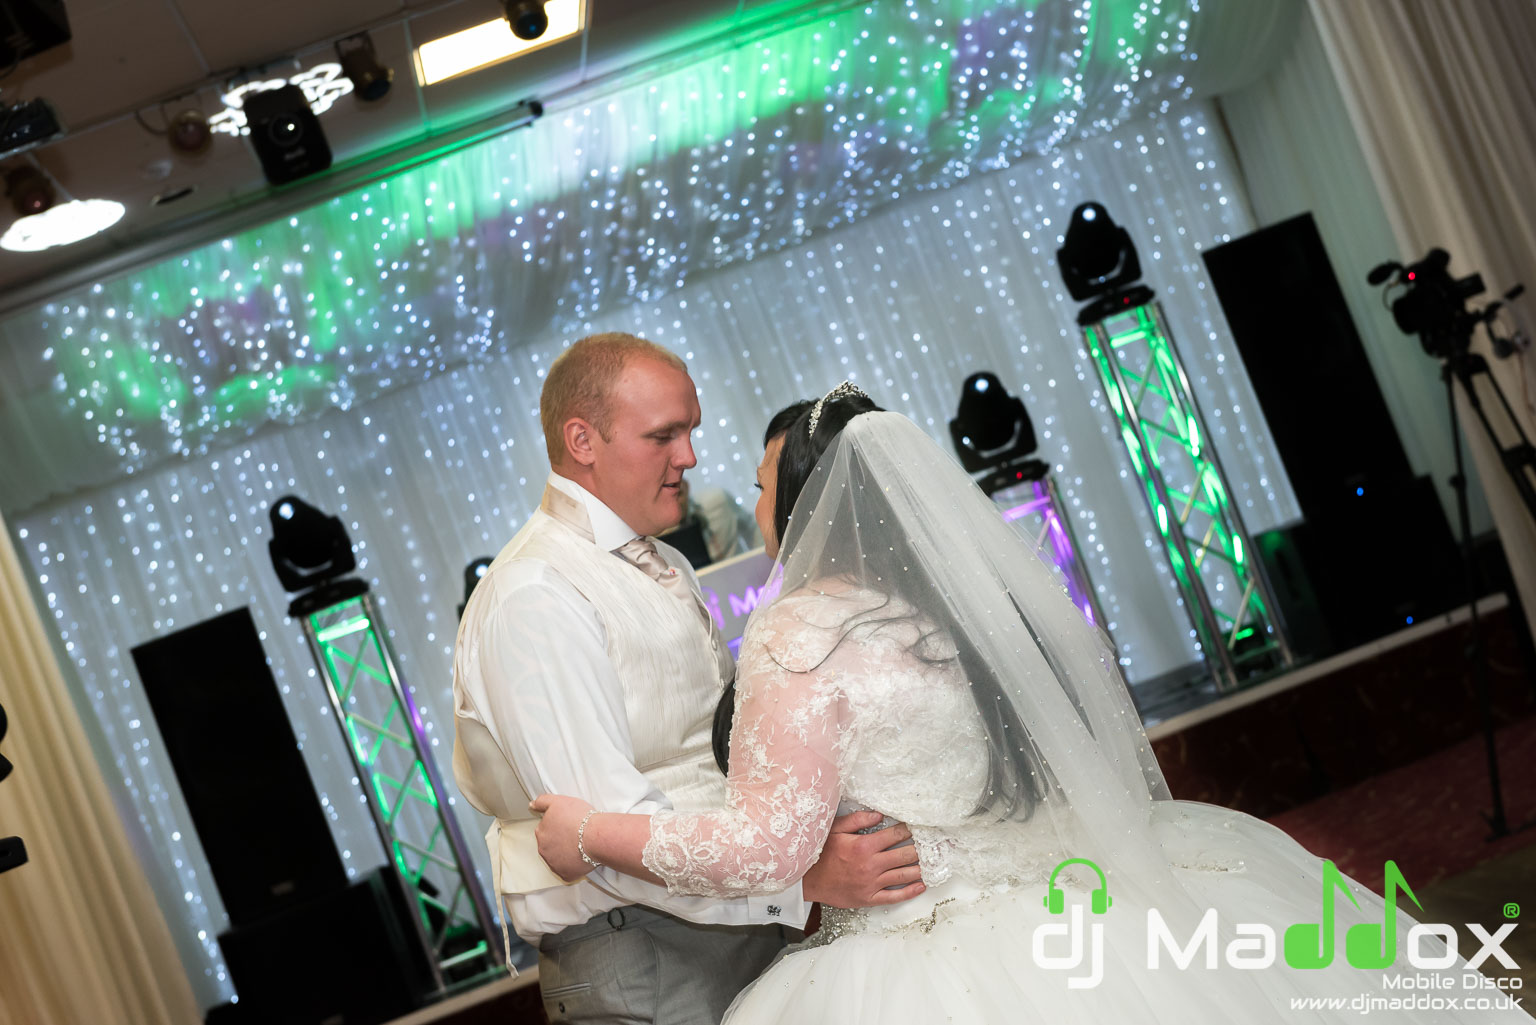 Alice in Wonderland Wedding DJ @ Manor Park Clydach - DJ Maddox ...